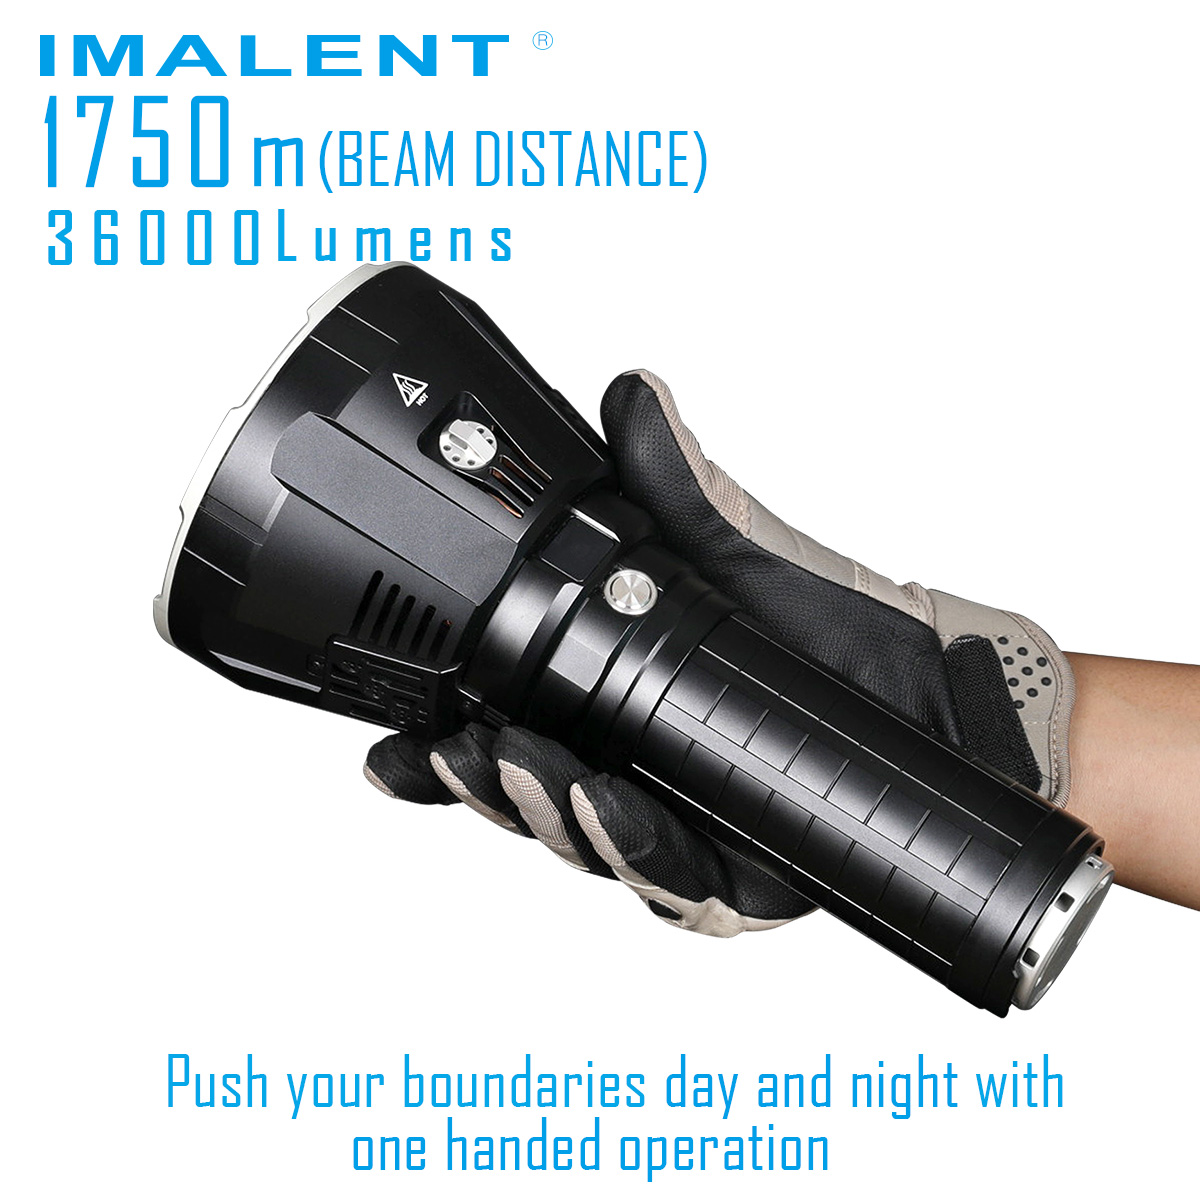 Flashlight IMALENT Battery-Pack Cooling-System 36000lm-Beam Built-In R90TS XHP35 1750-Meter